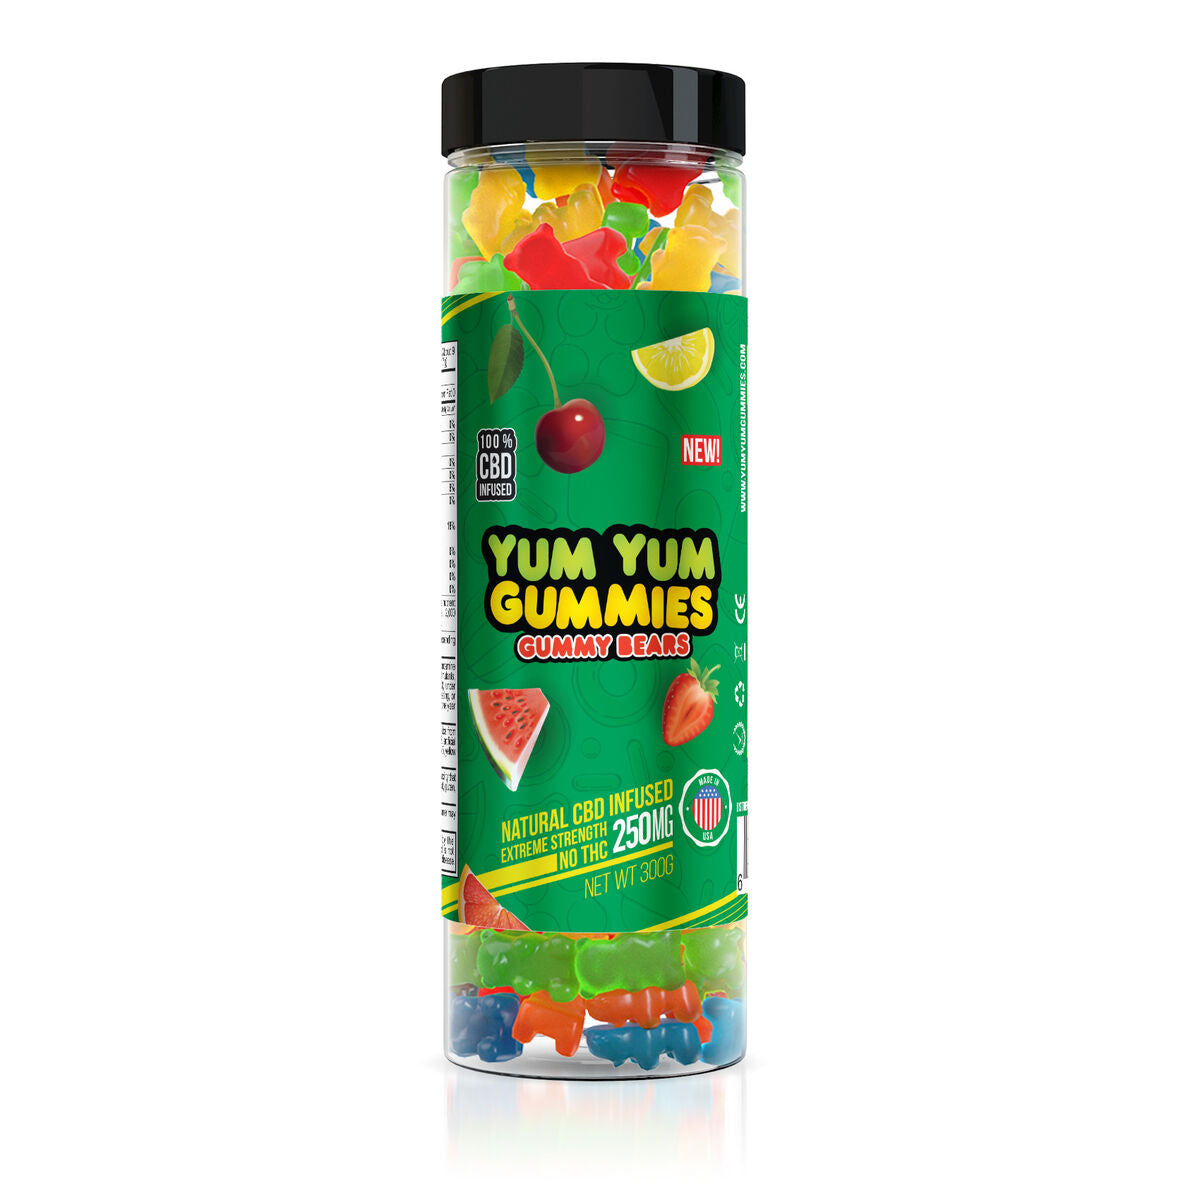 Yum Yum Gummies 250mg - CBD Infused Gummy Bears